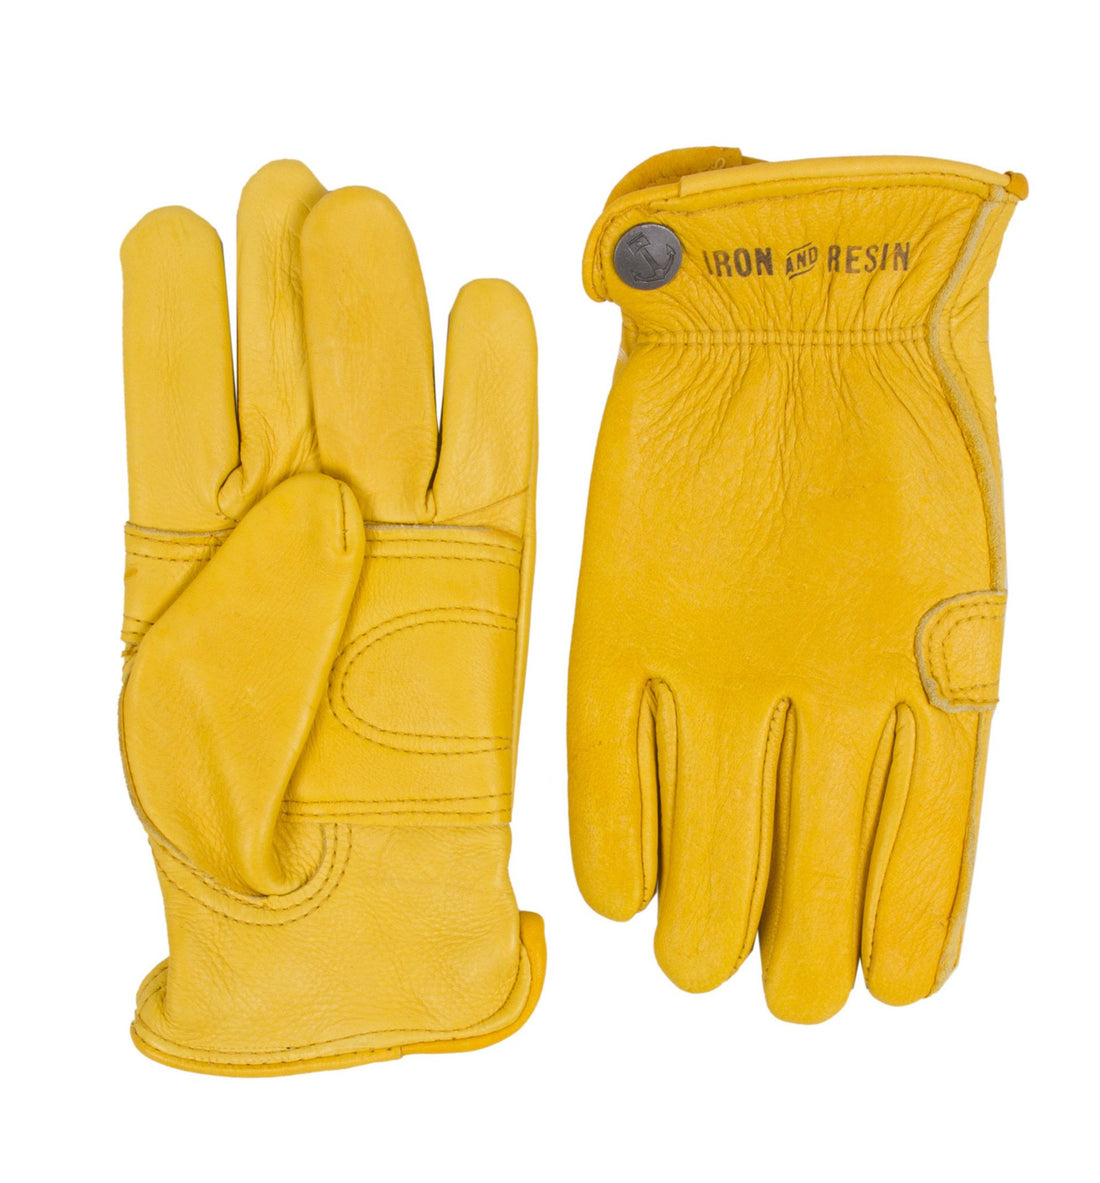 Cafe Glove - Gloves - Iron and Resin